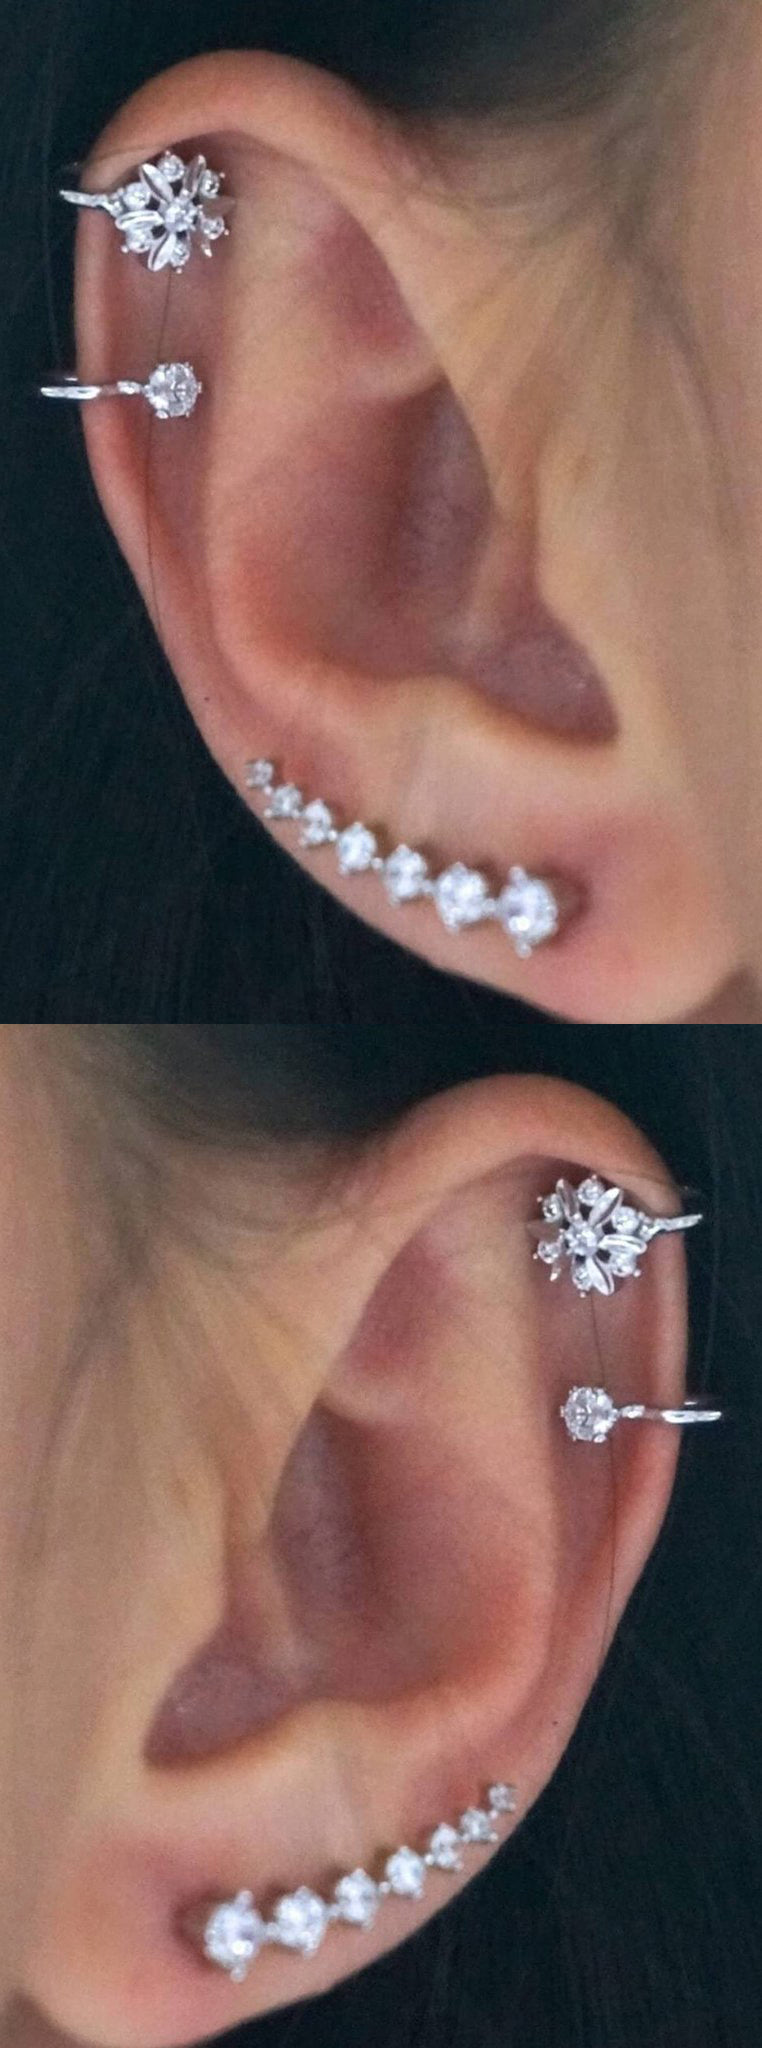 Classy Ear Piercing Ideas at MyBodiArt.com - Double Cartilage Helix Ring - Crystal Ear Climber Earring